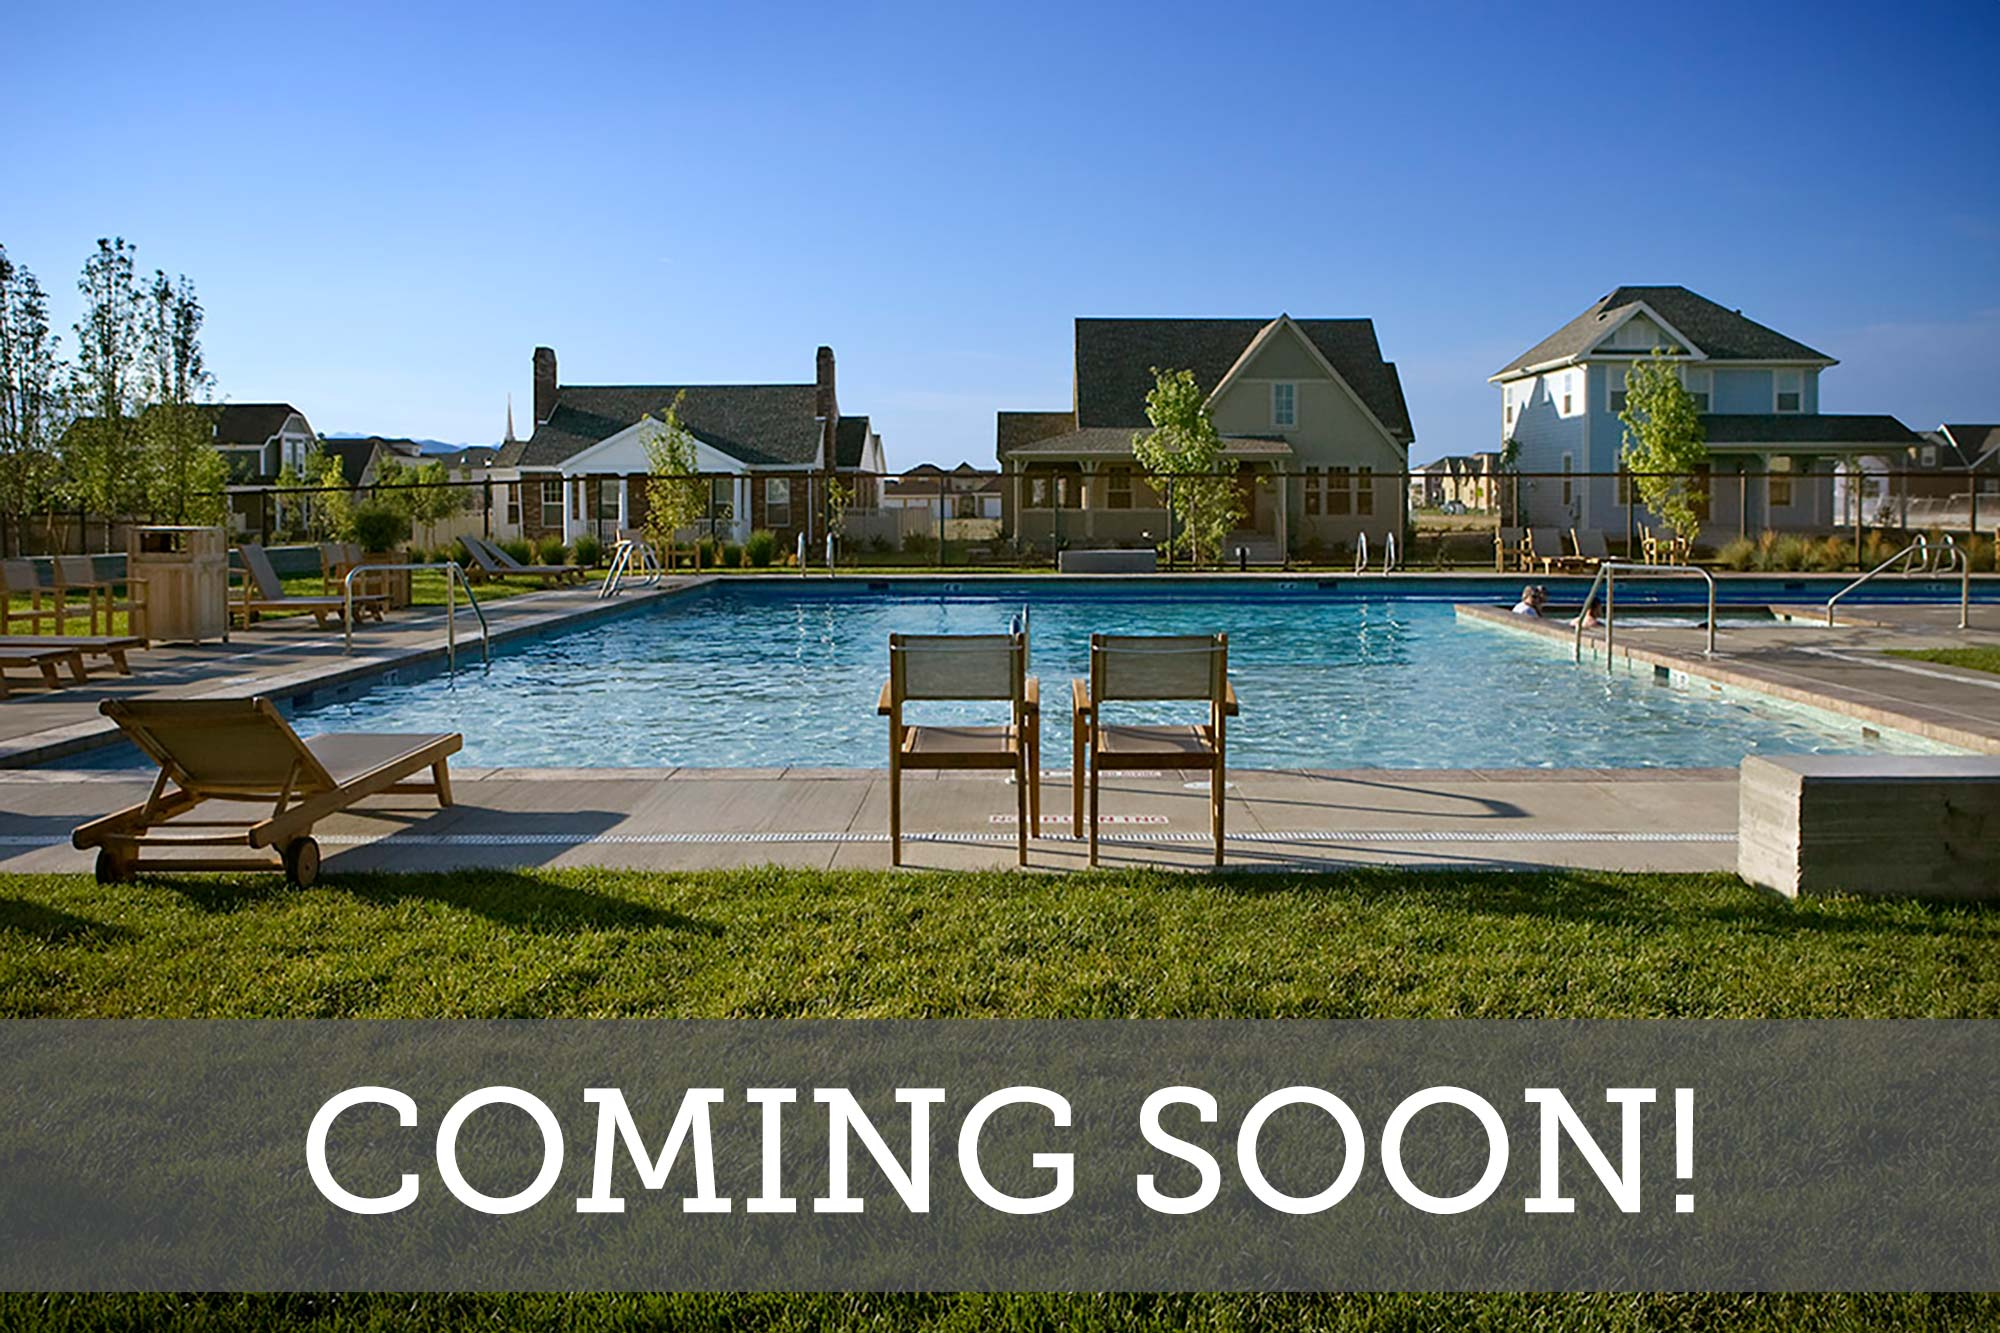 Paired Villas at Daybreak - Coming Soon